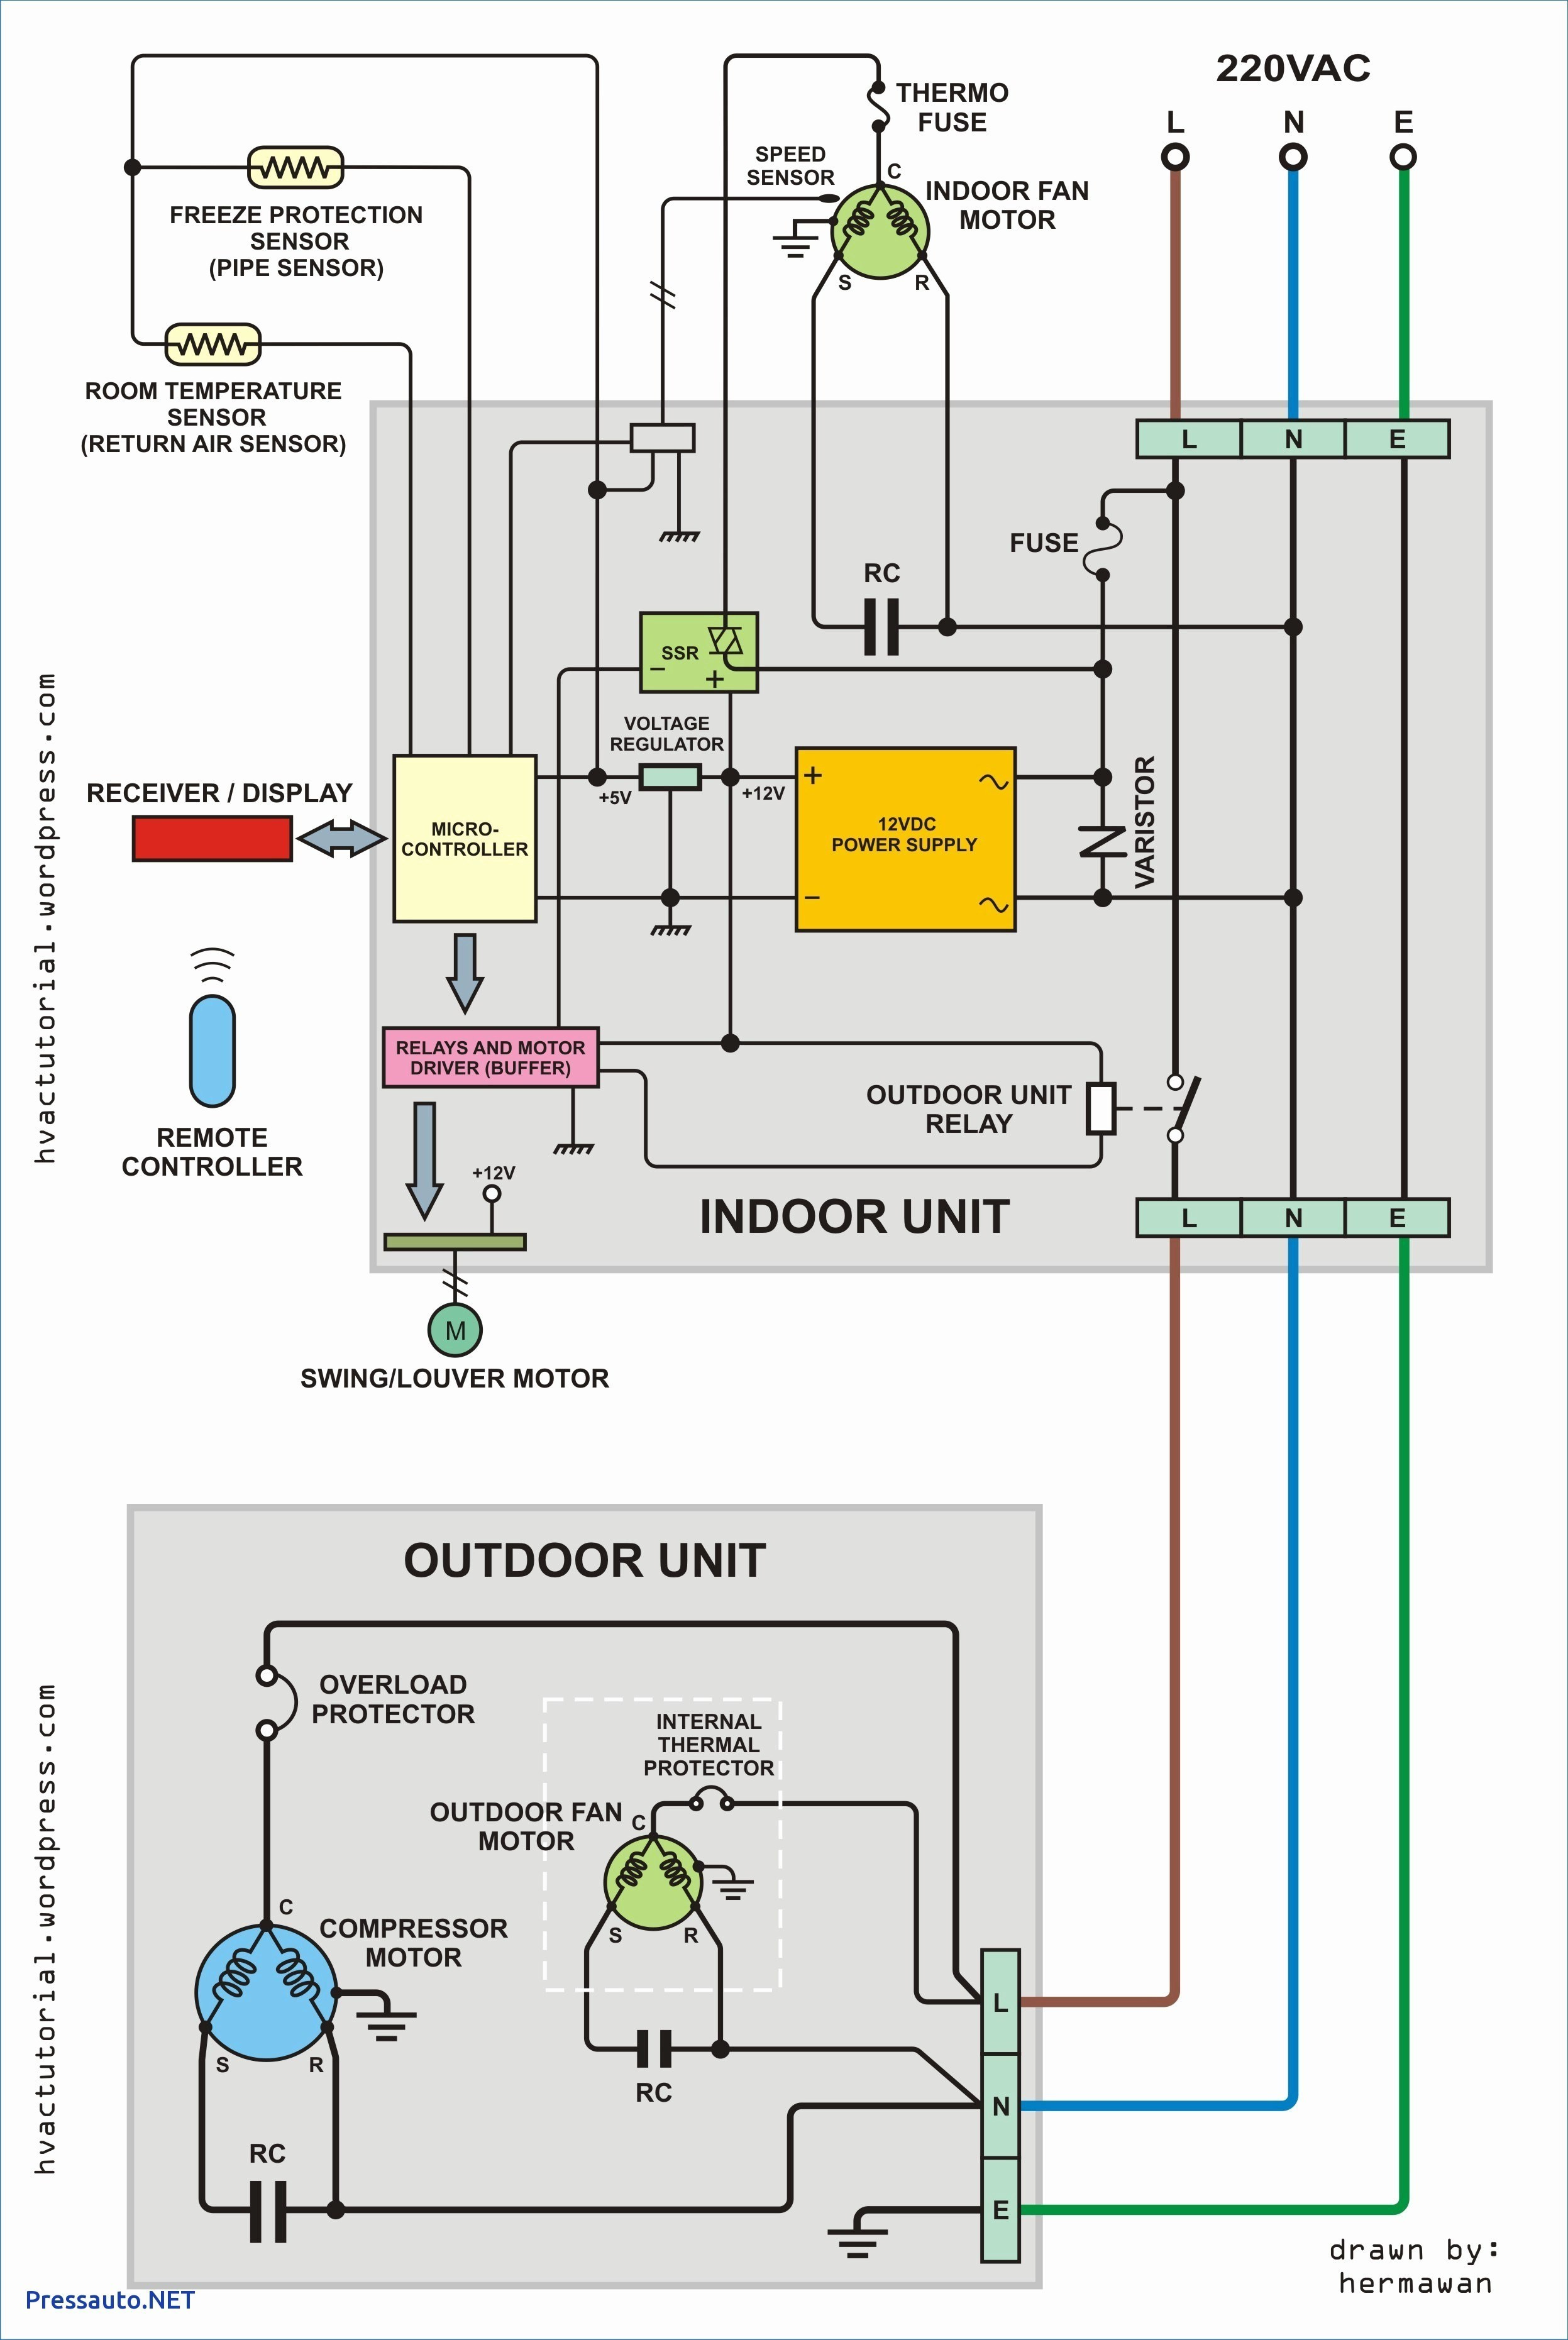 Donahue Trailer Wiring Diagram - Fusebox and Wiring Diagram electrical-rub  - electrical-rub.sirtarghe.itdiagram database - sirtarghe.it